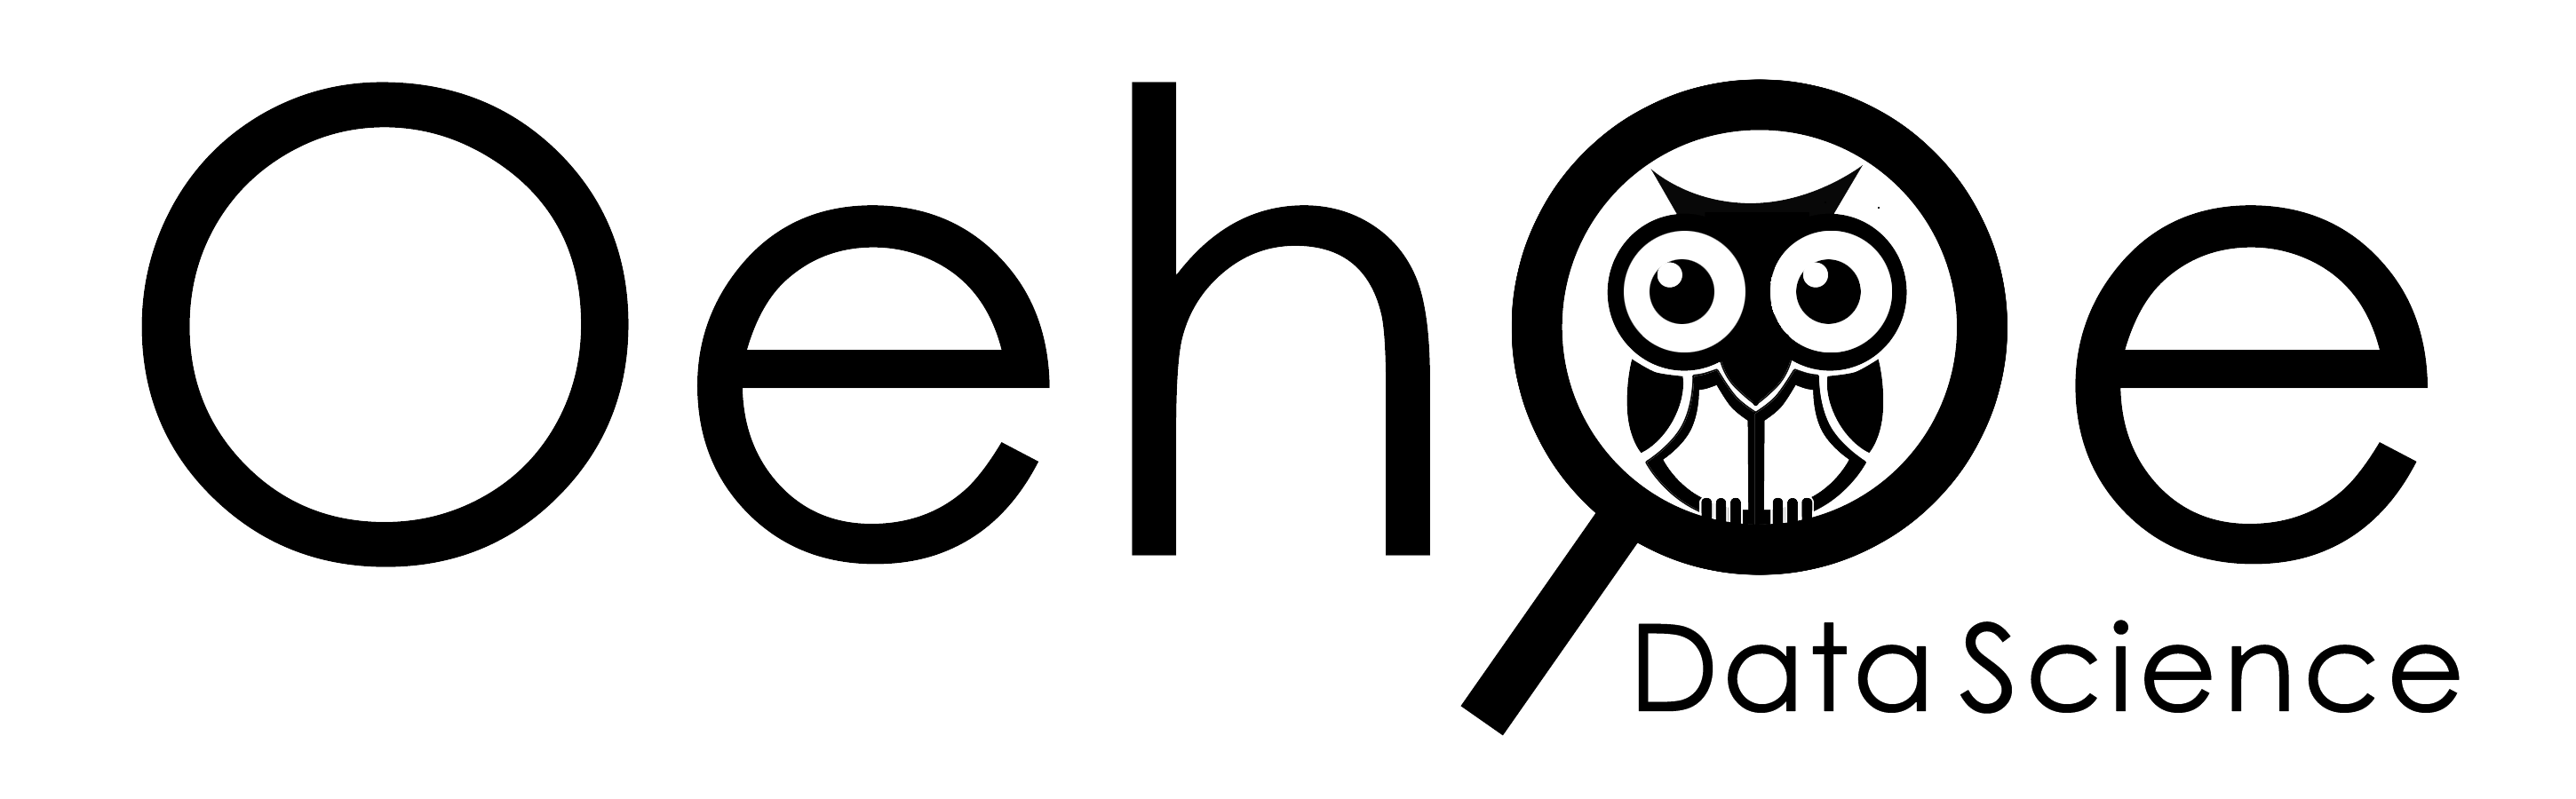 Oehoe Data Science BV